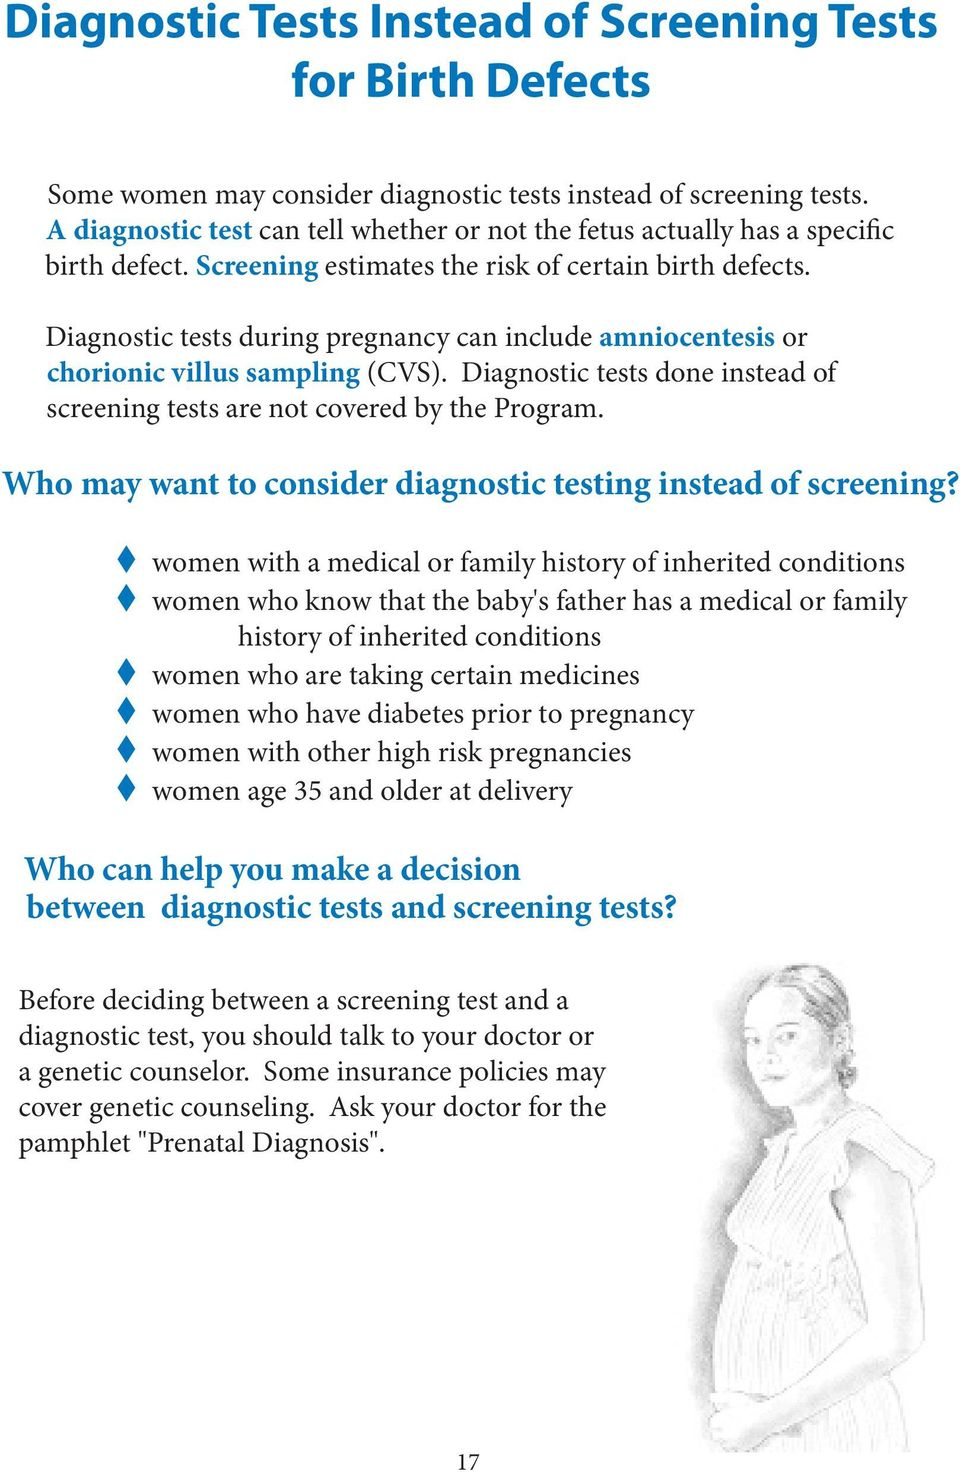 Diagnostic tests during pregnancy can include amniocentesis or chorionic villus sampling (CVS). Diagnostic tests done instead of screening tests are not covered by the Program.